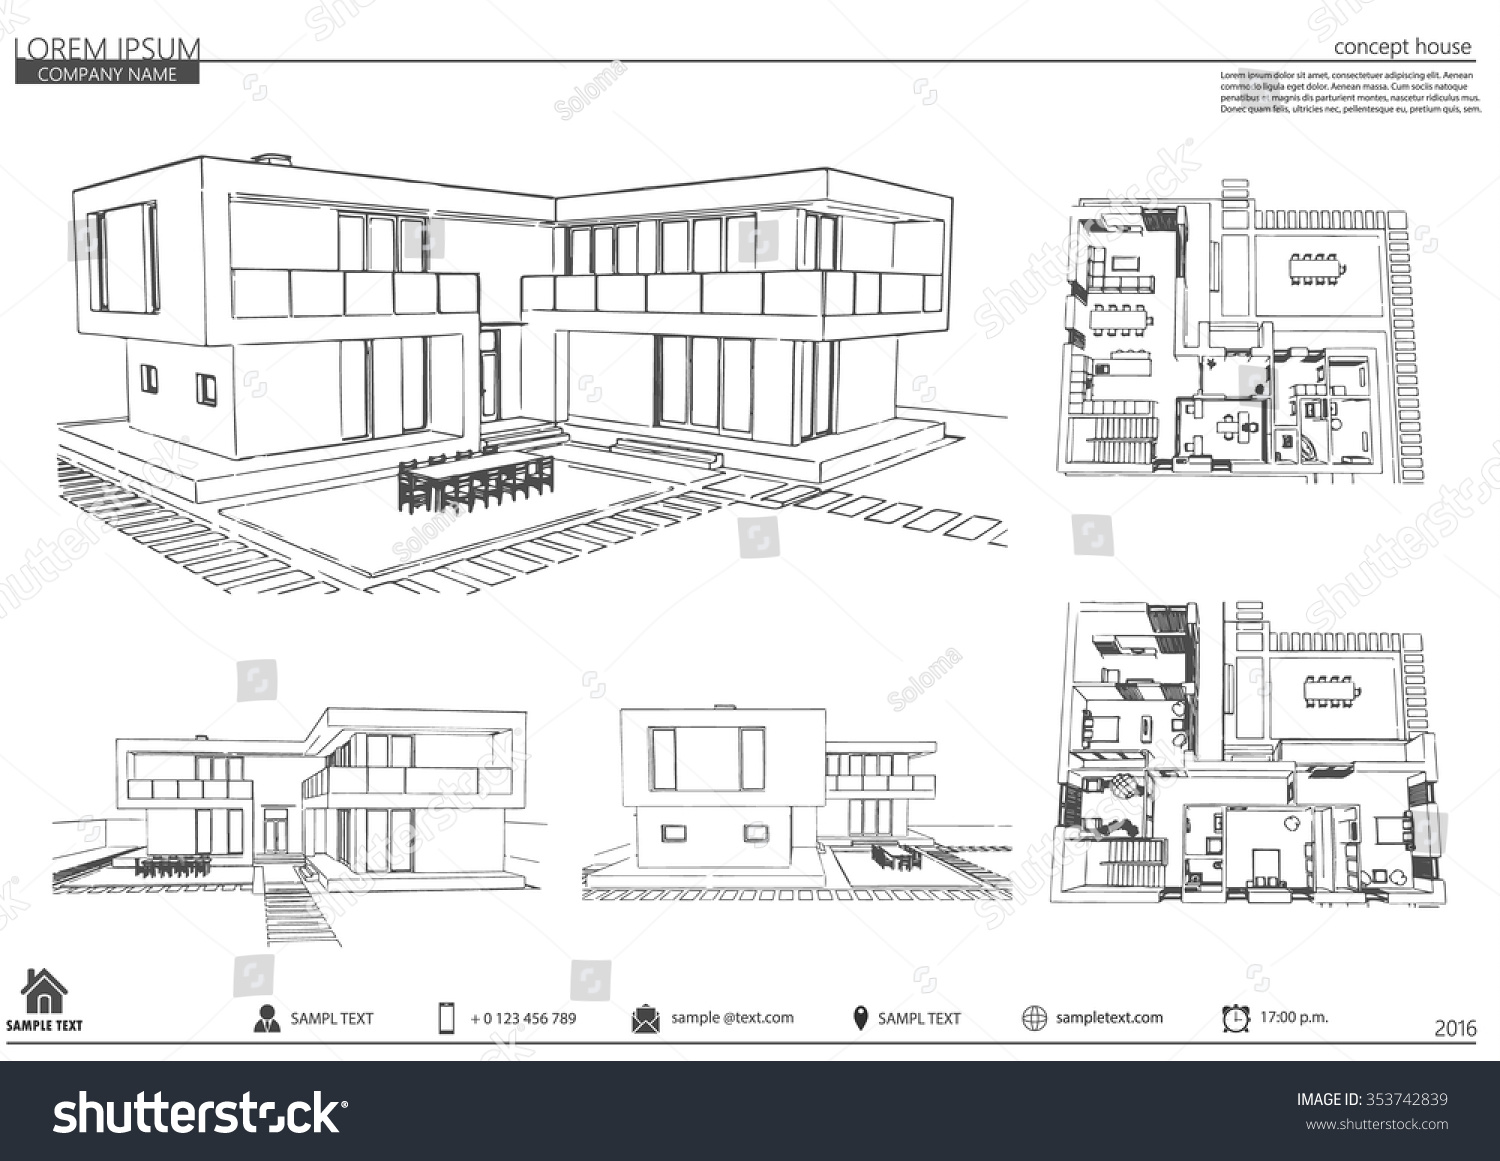 Wireframe blueprint drawing 3 d building vector stock photo photo wireframe blueprint drawing of 3d building vector architectural template background malvernweather Gallery